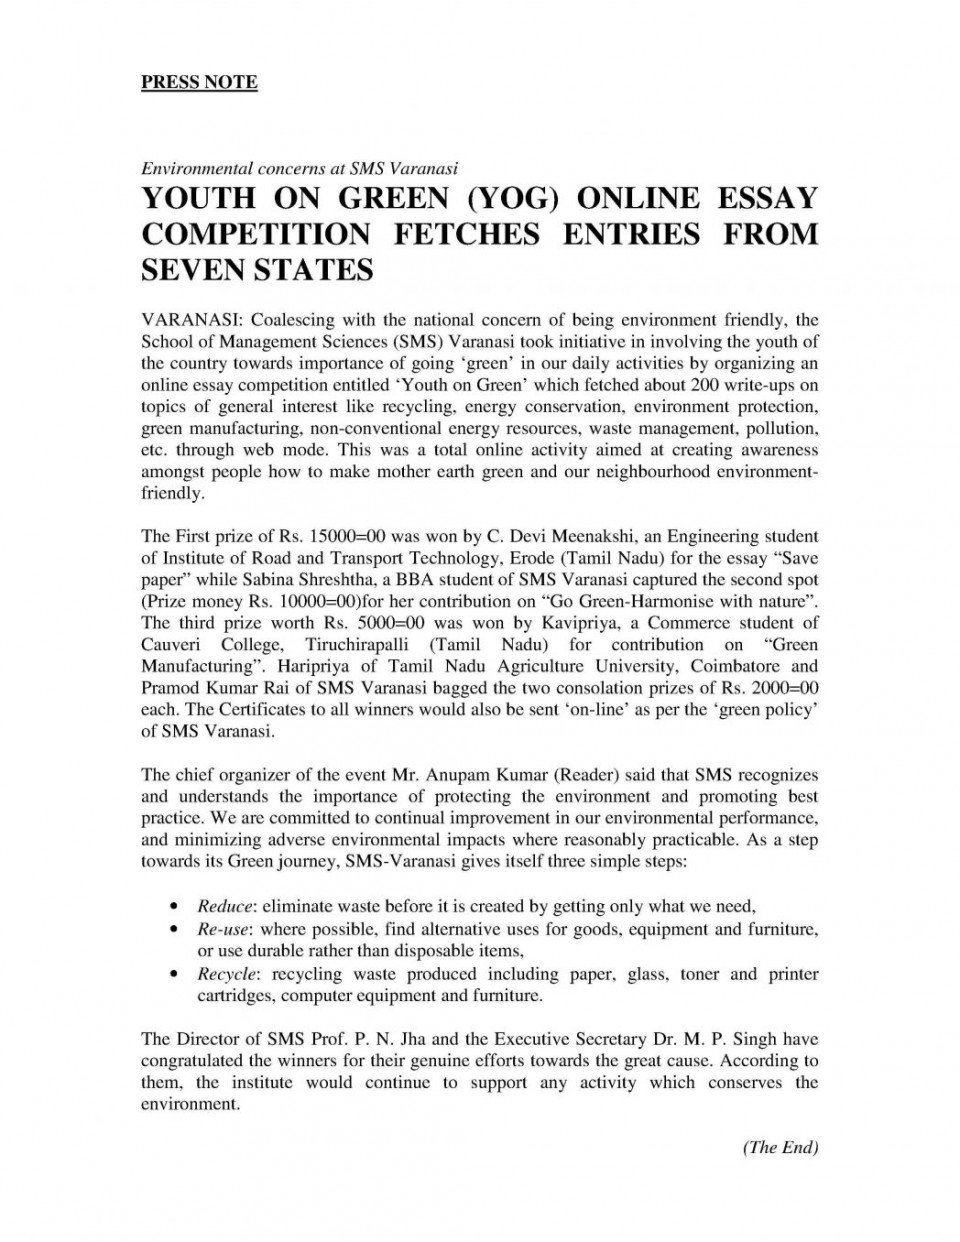 020 Best Essays For College Essay On Good Habits How Tot Application Online Yog Press Re About Yourself Examples Your Background Failure Prompt Off Hook 1048x1356 Example Amazing To Start An With A Definition Rhetorical Question Life 960